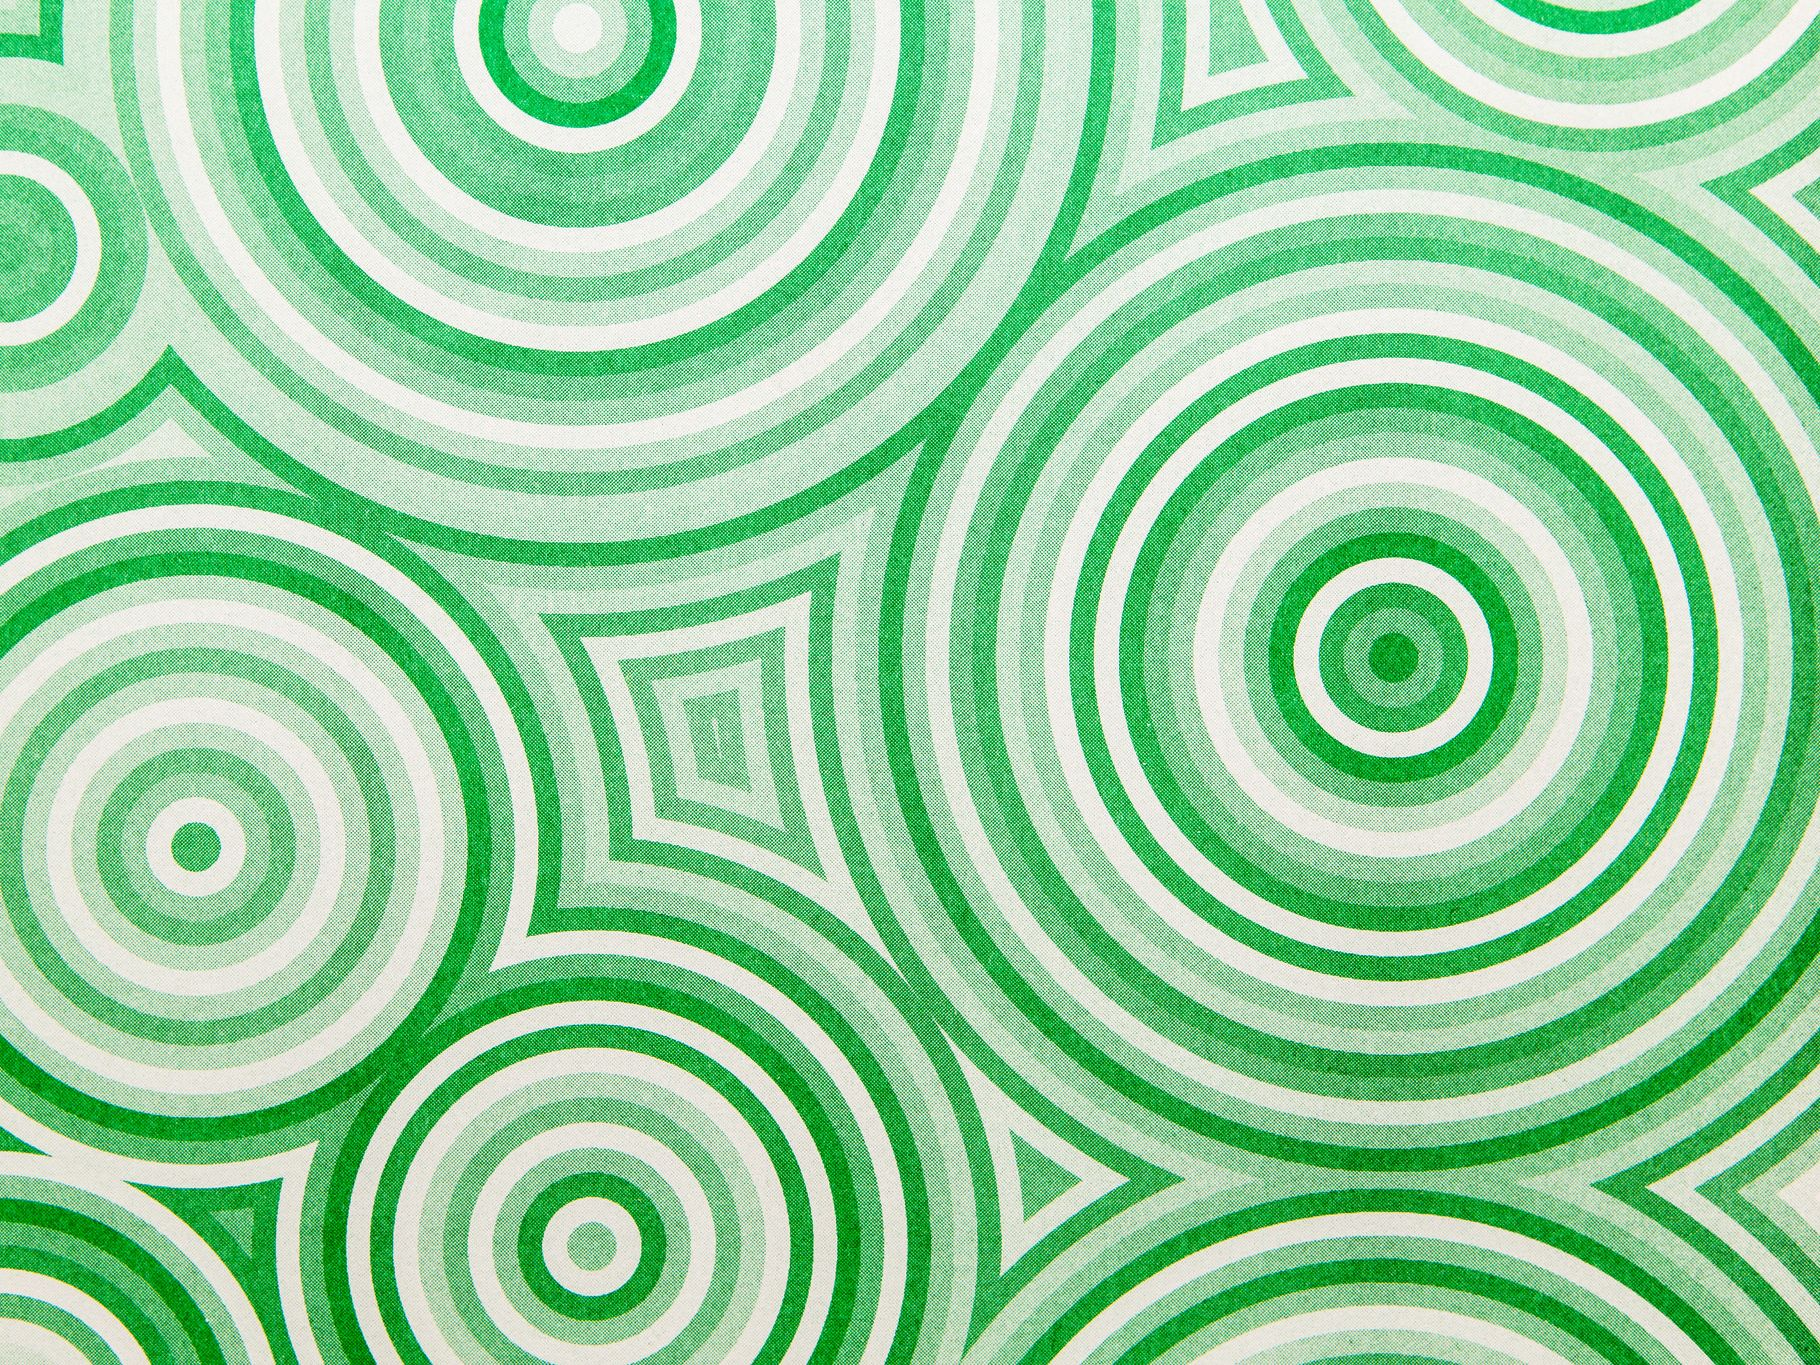 swirling green circles